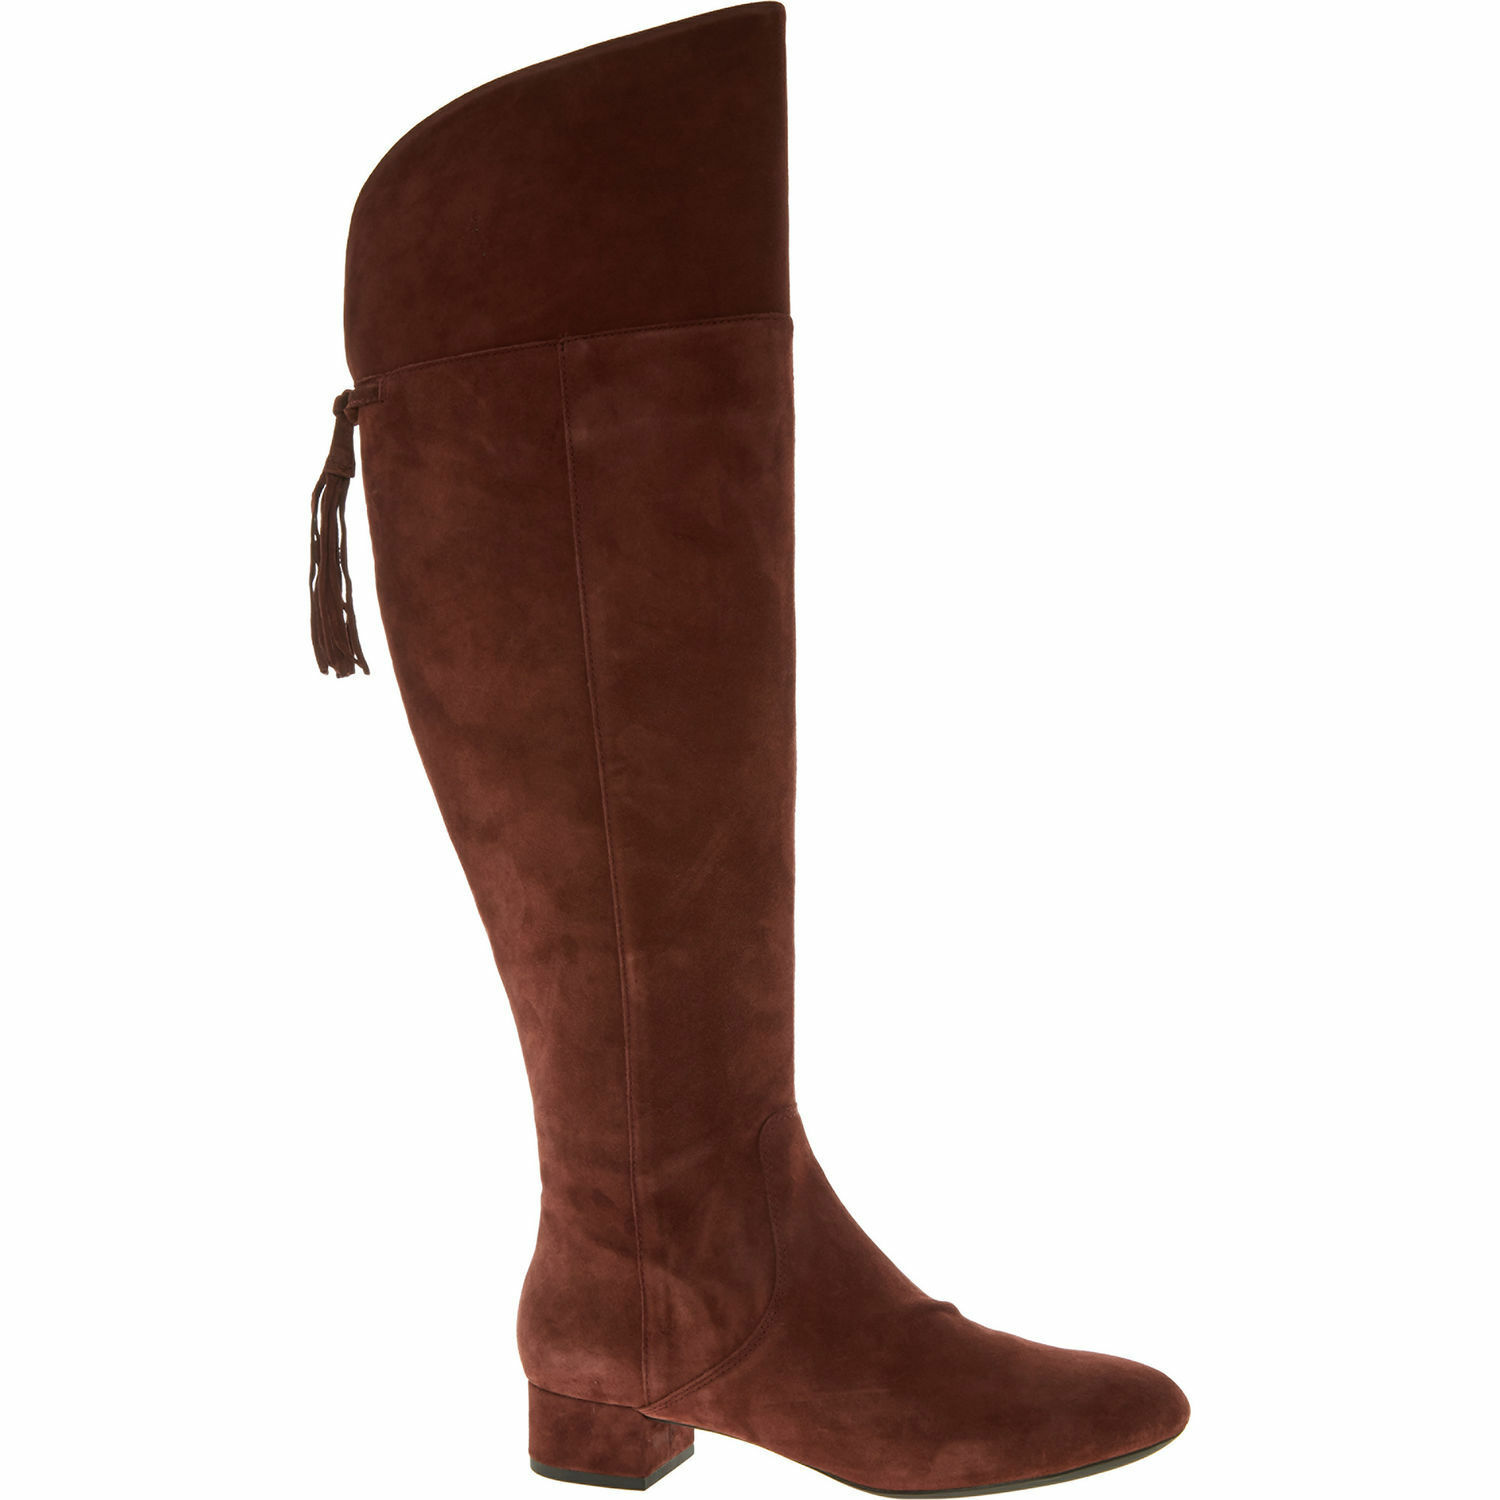 GEOX Women's CAREY B Knee High Suede Boots, Colour Cigar, size or UK7